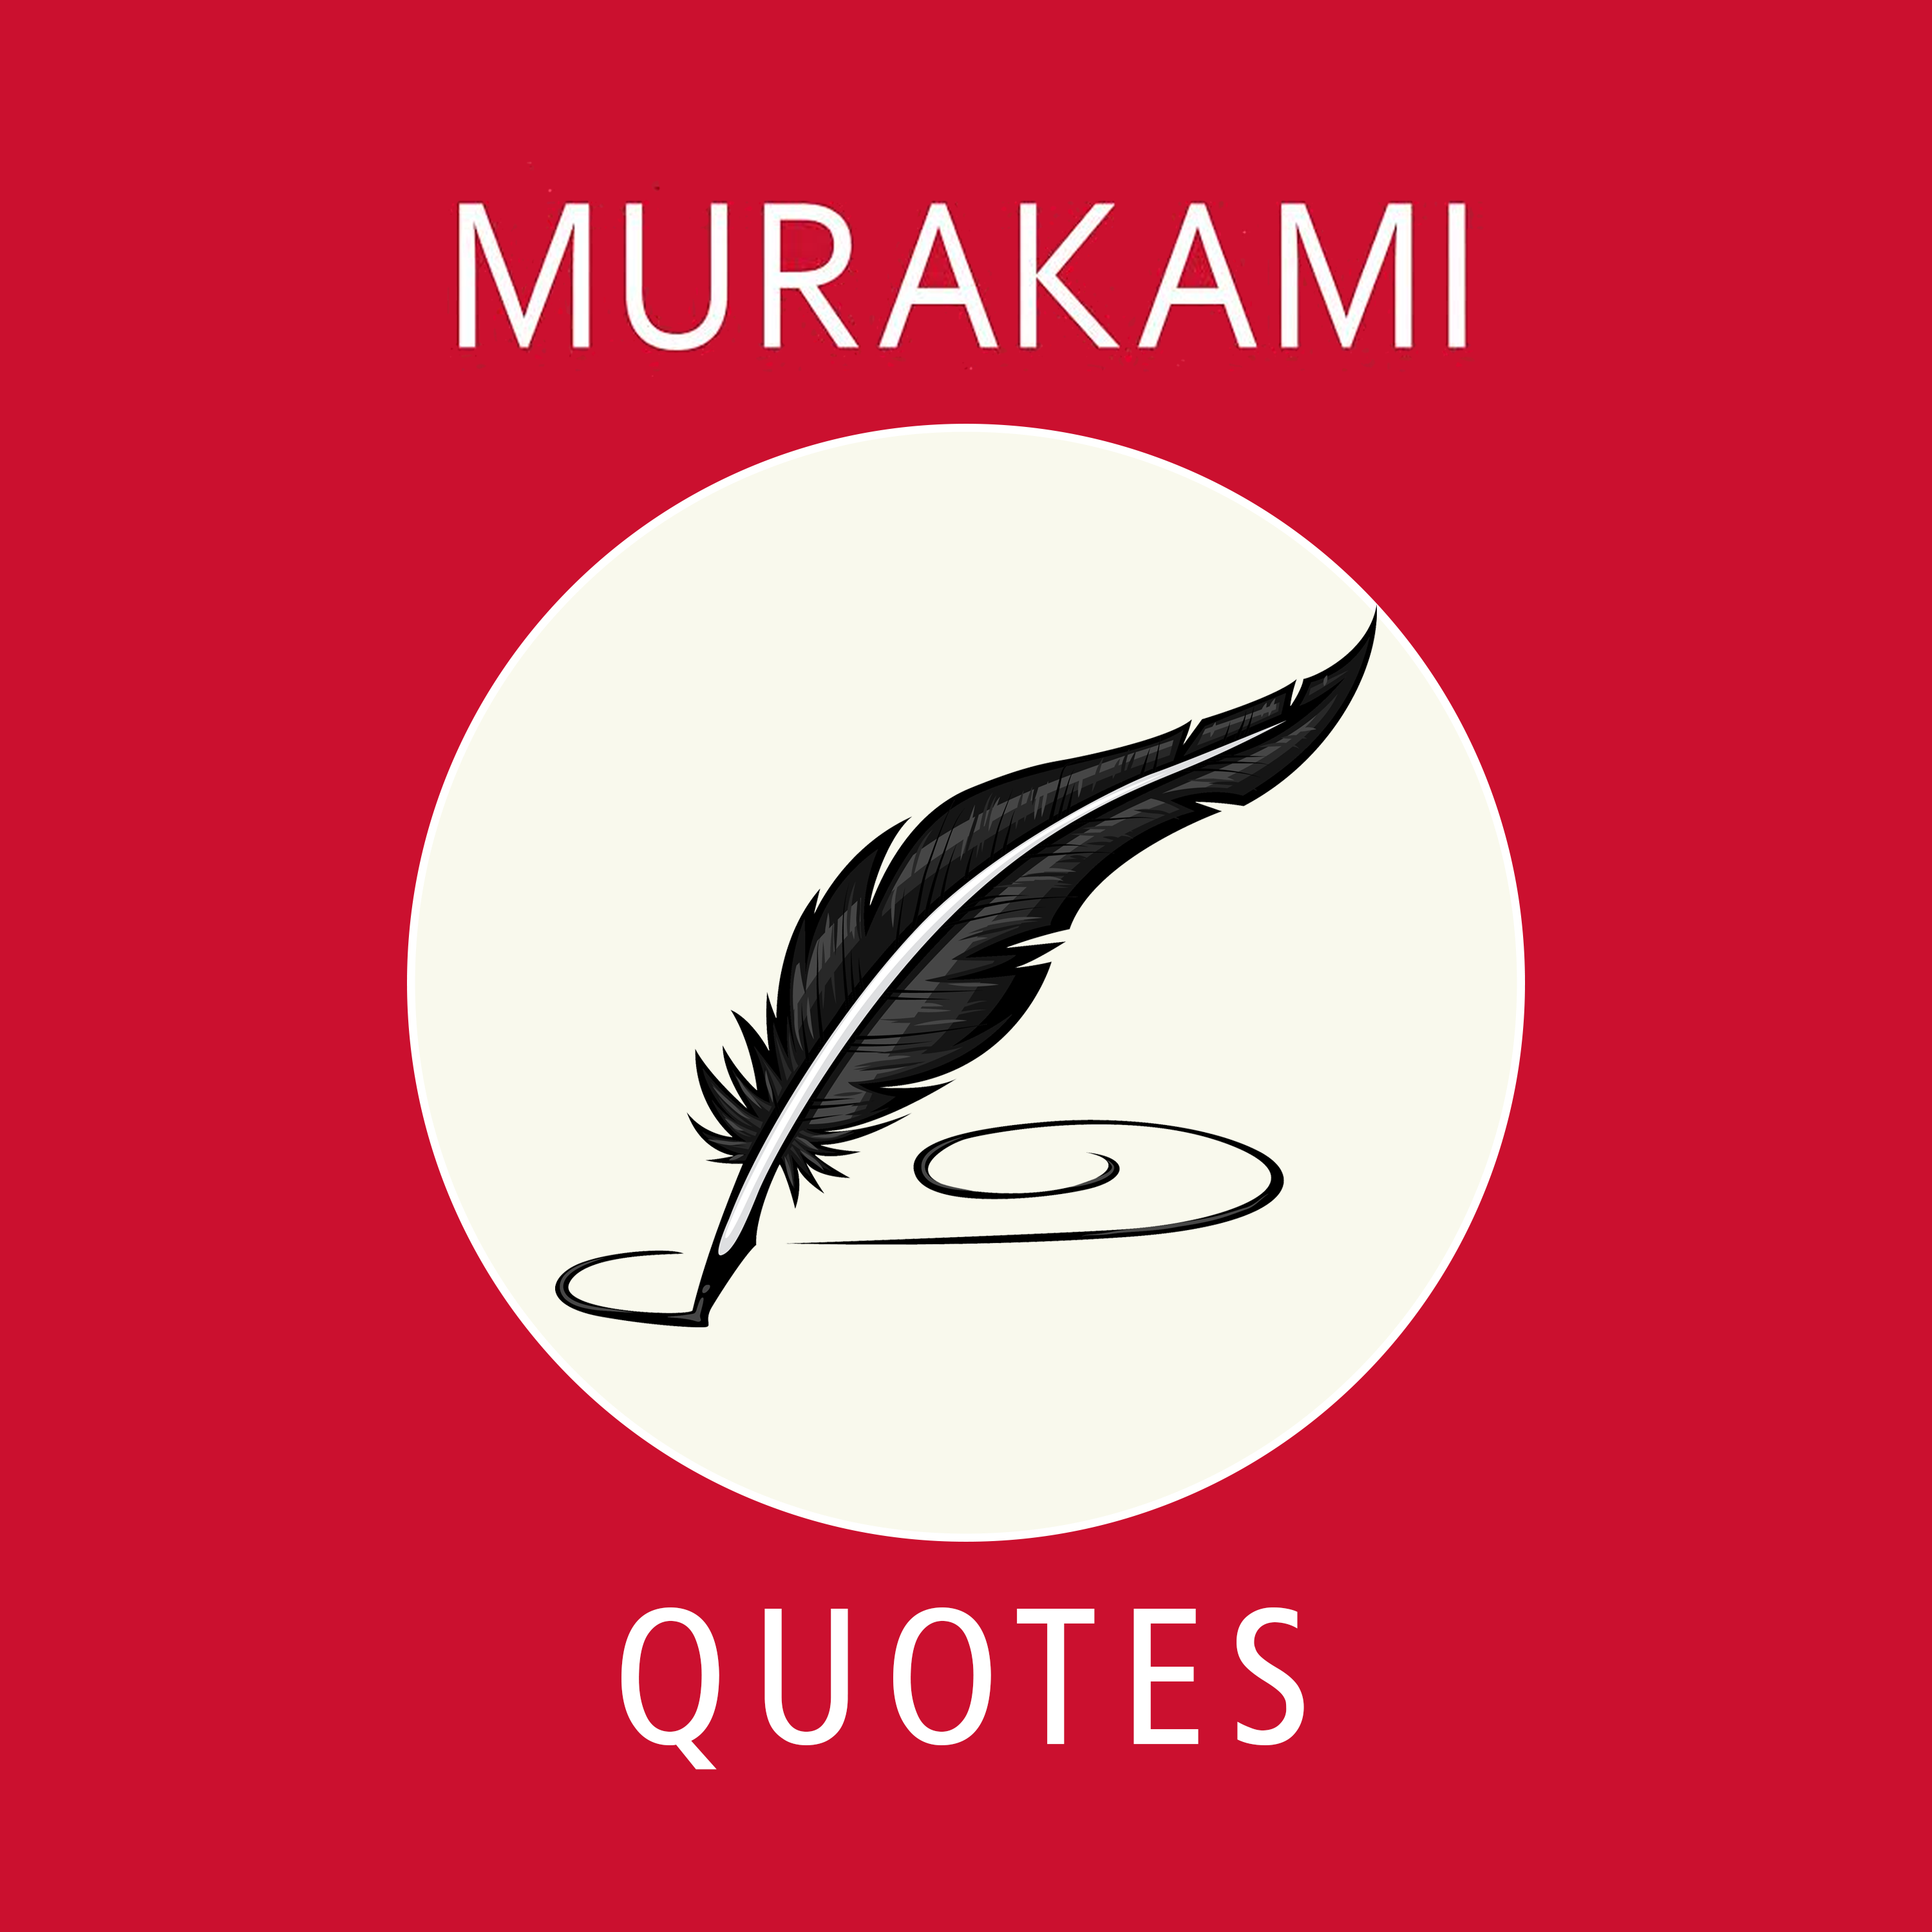 Haruki Murakami Quotes Quotes Pinterest Haruki Murakami And